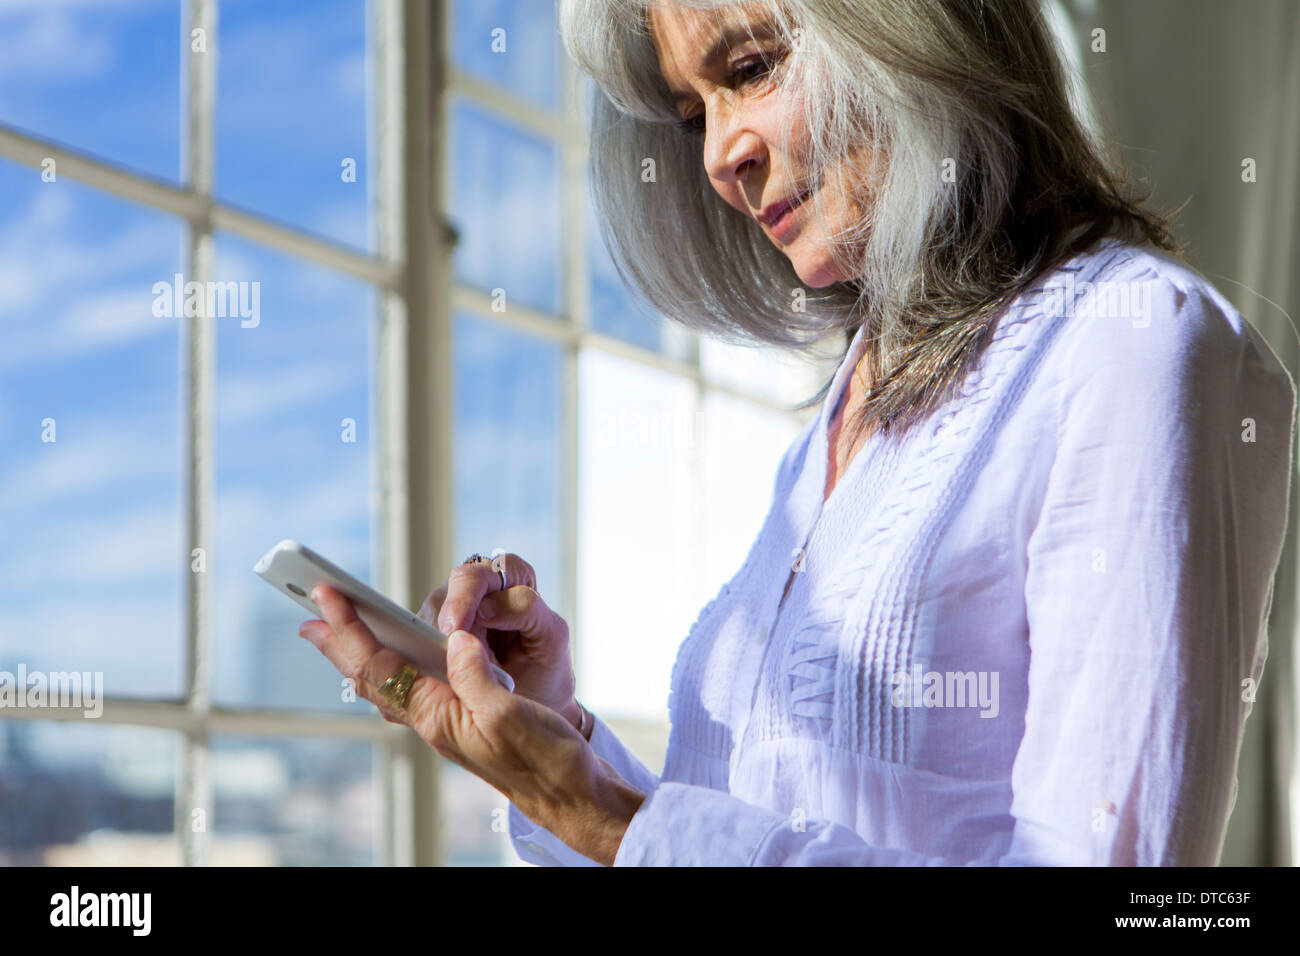 Senior woman using touchscreen on smartphone - Stock Image